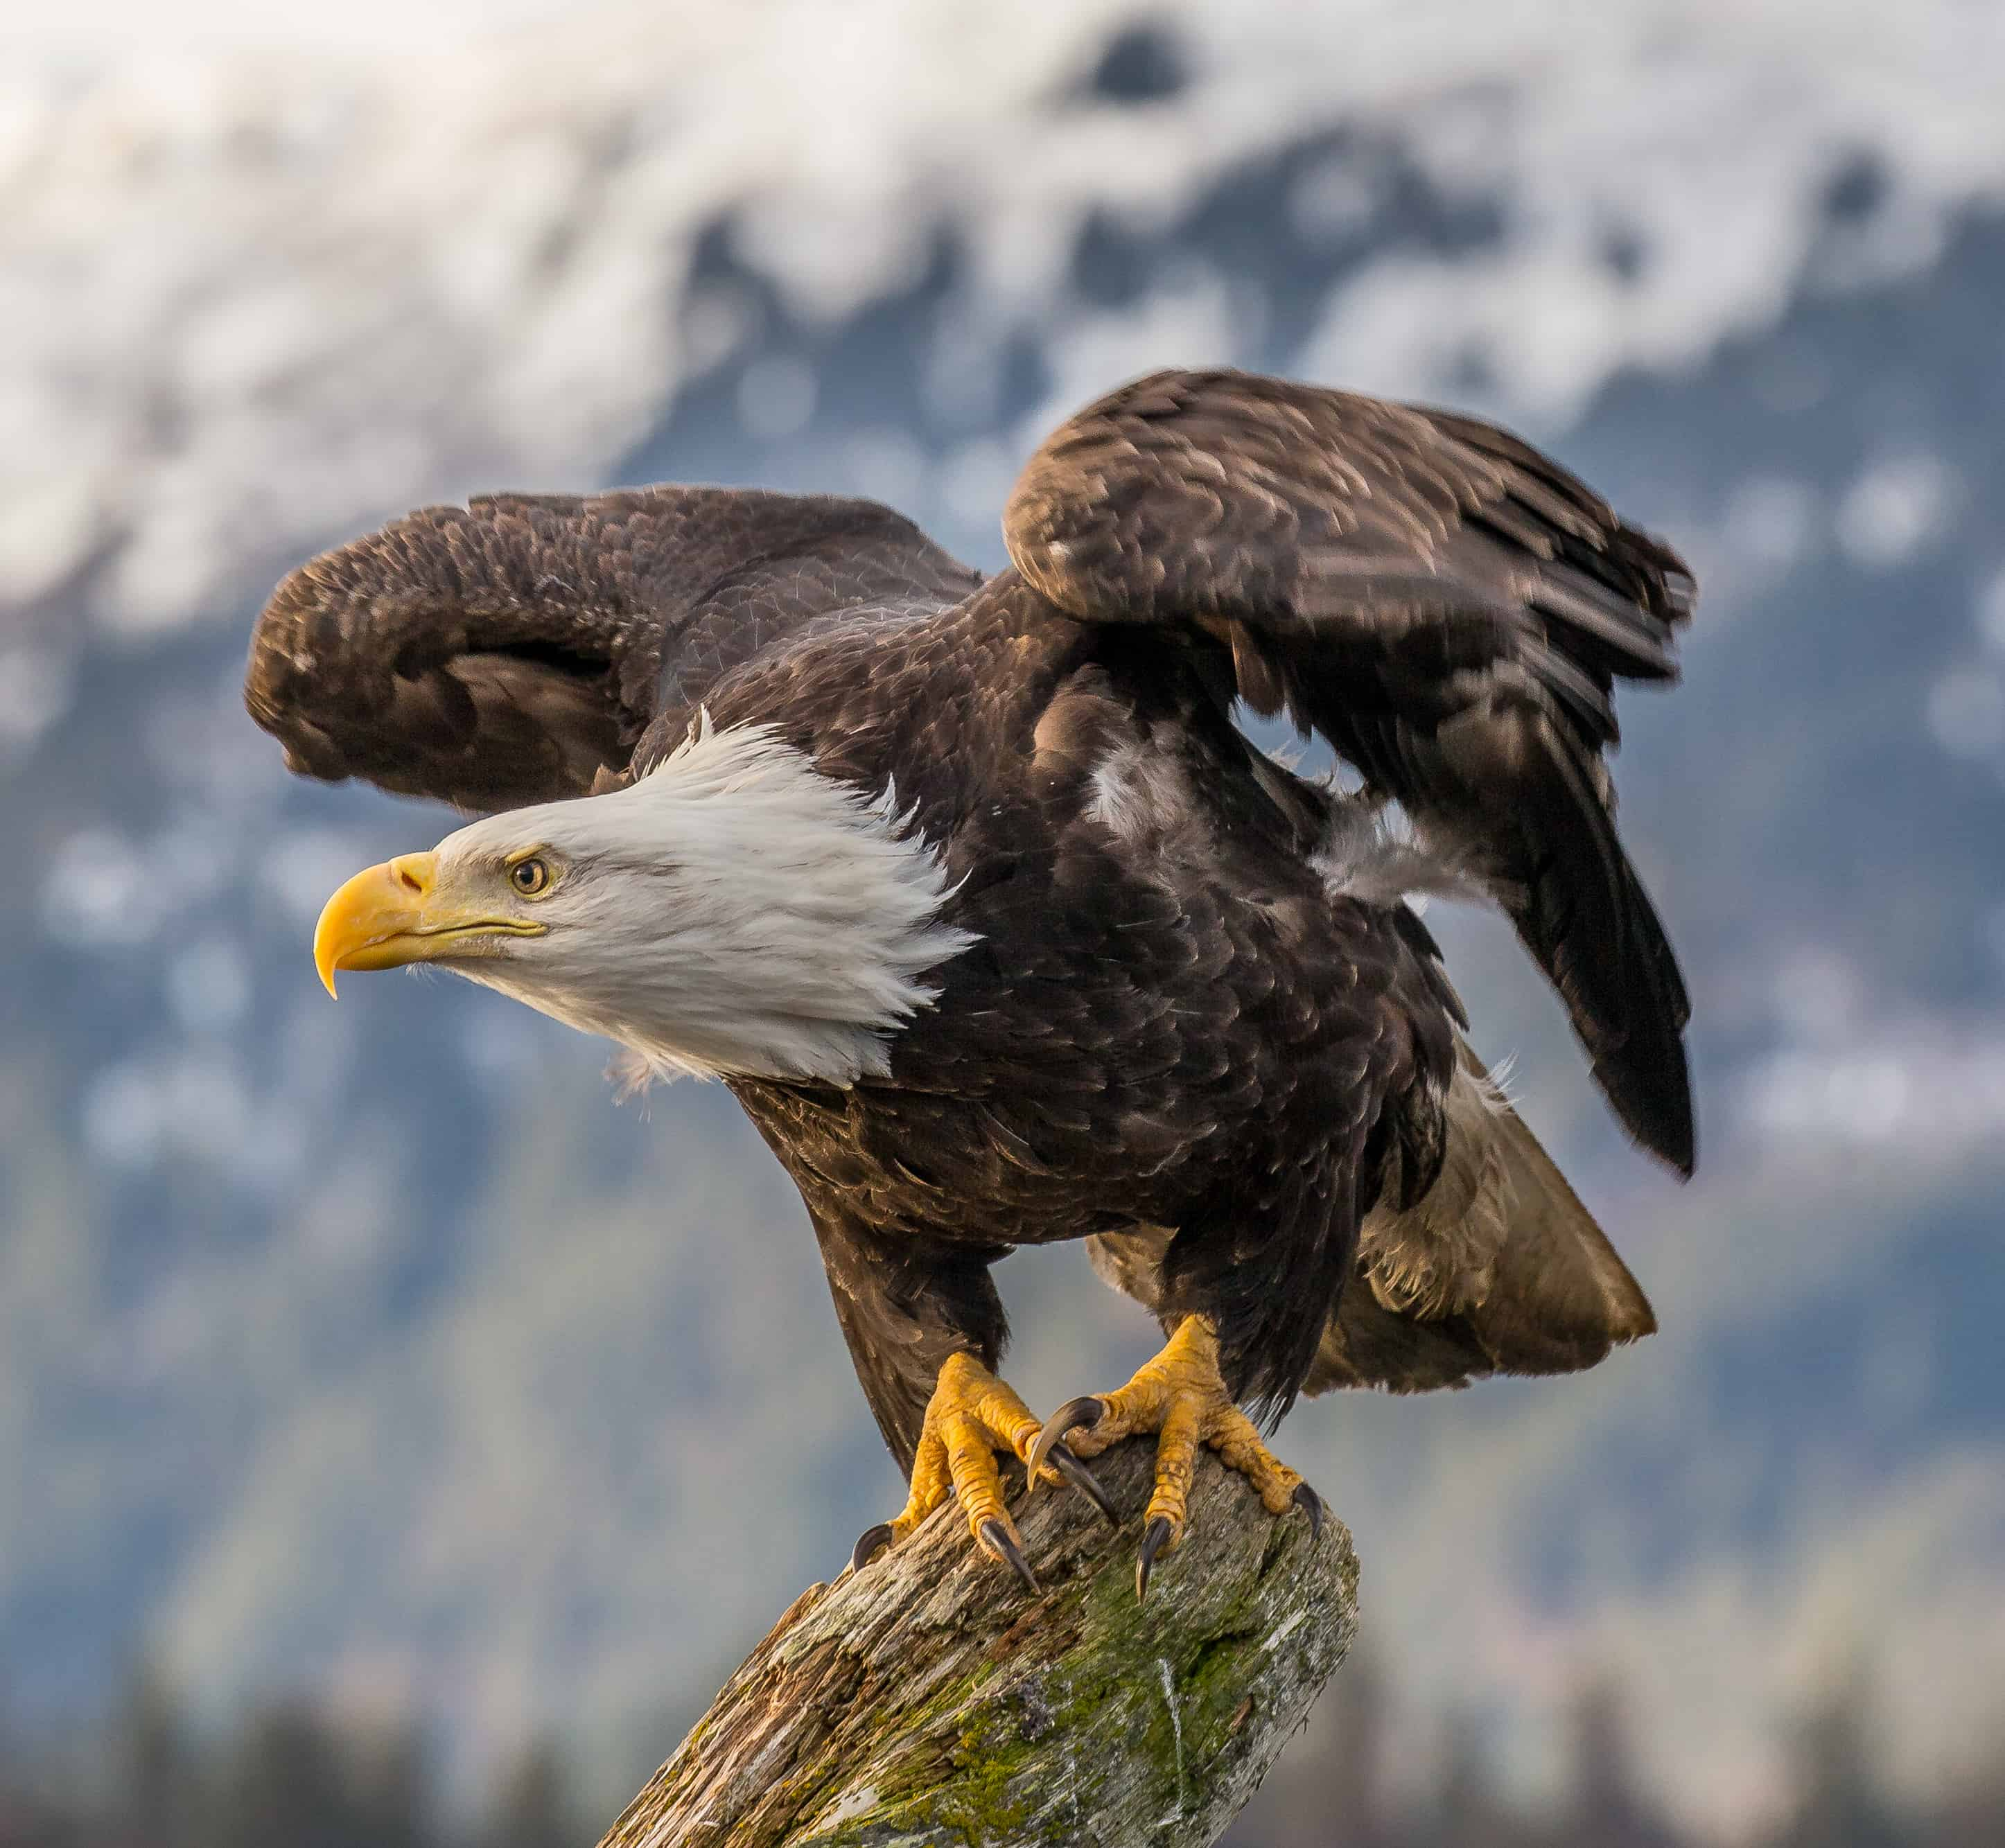 What is the size of a Bald Eagle?